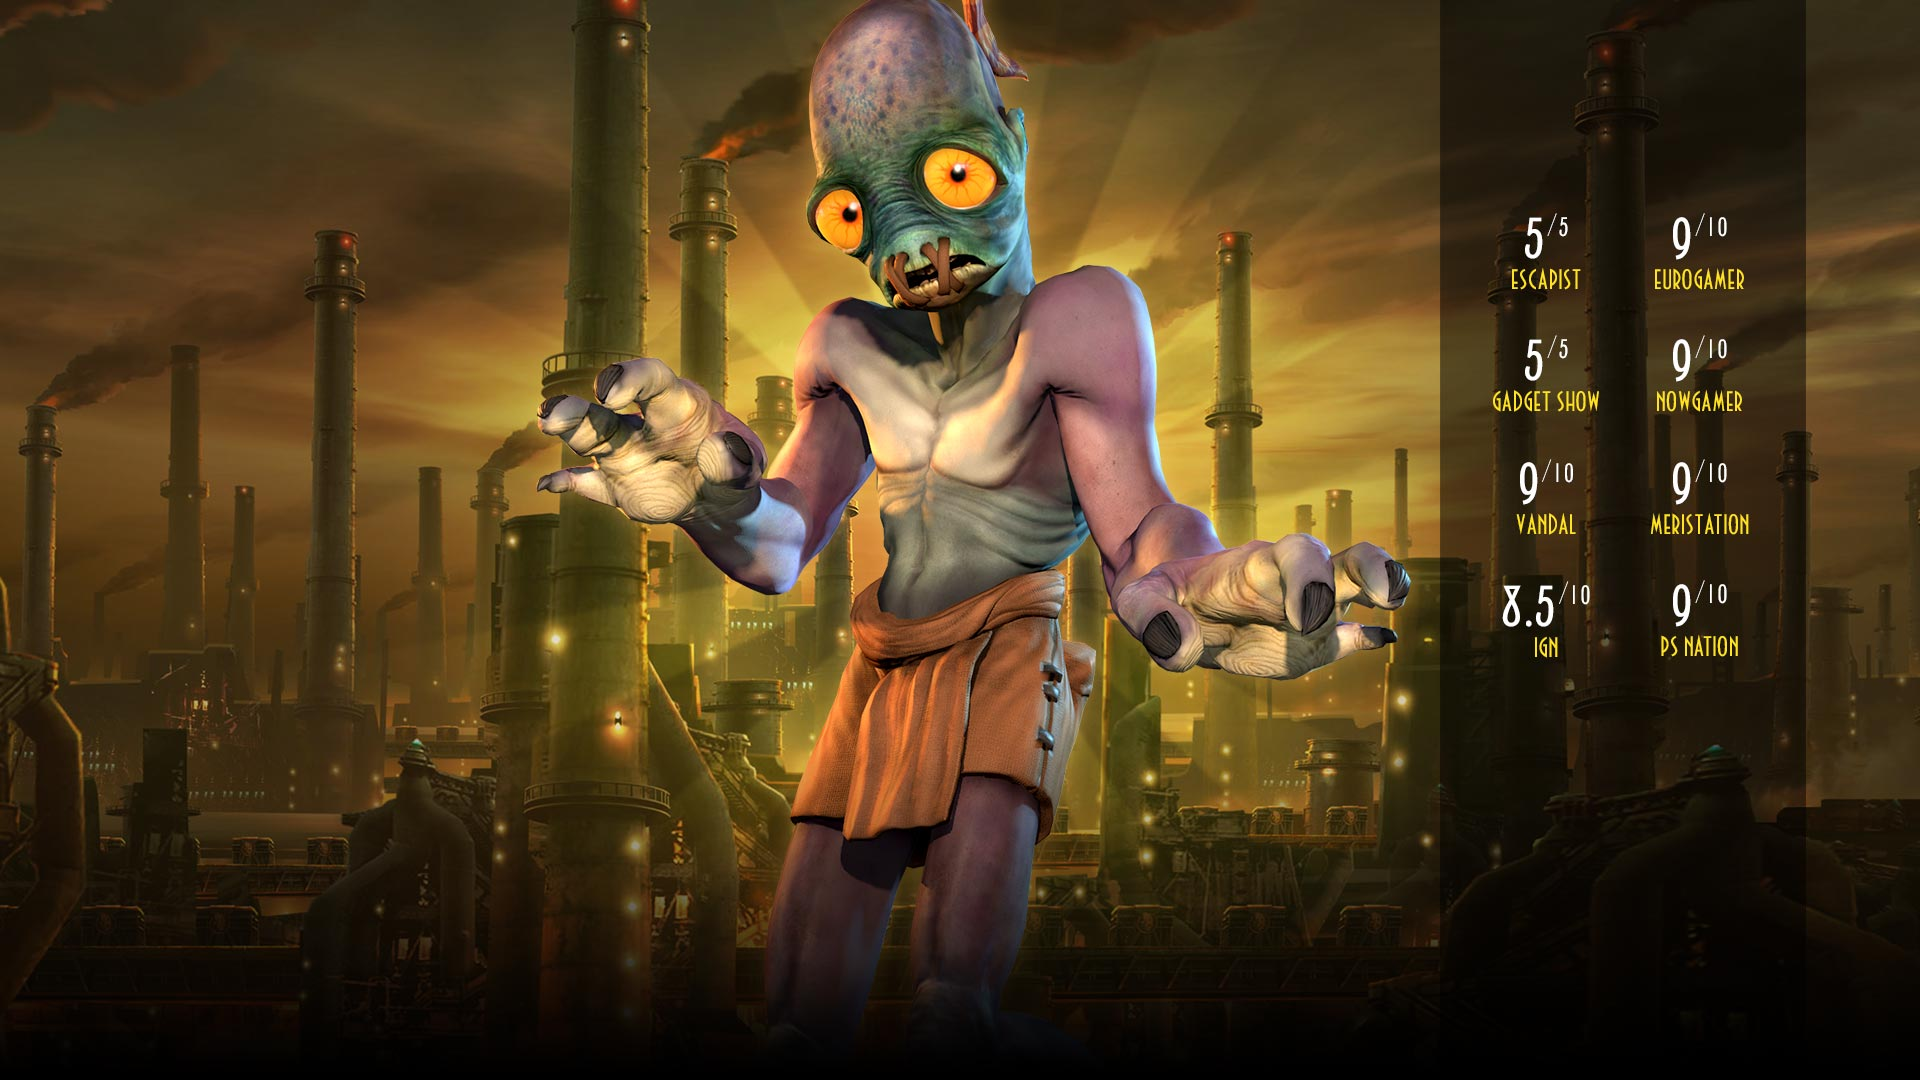 oddworld_new-n-tasty_release_date_for_linux_mac_windows_pc